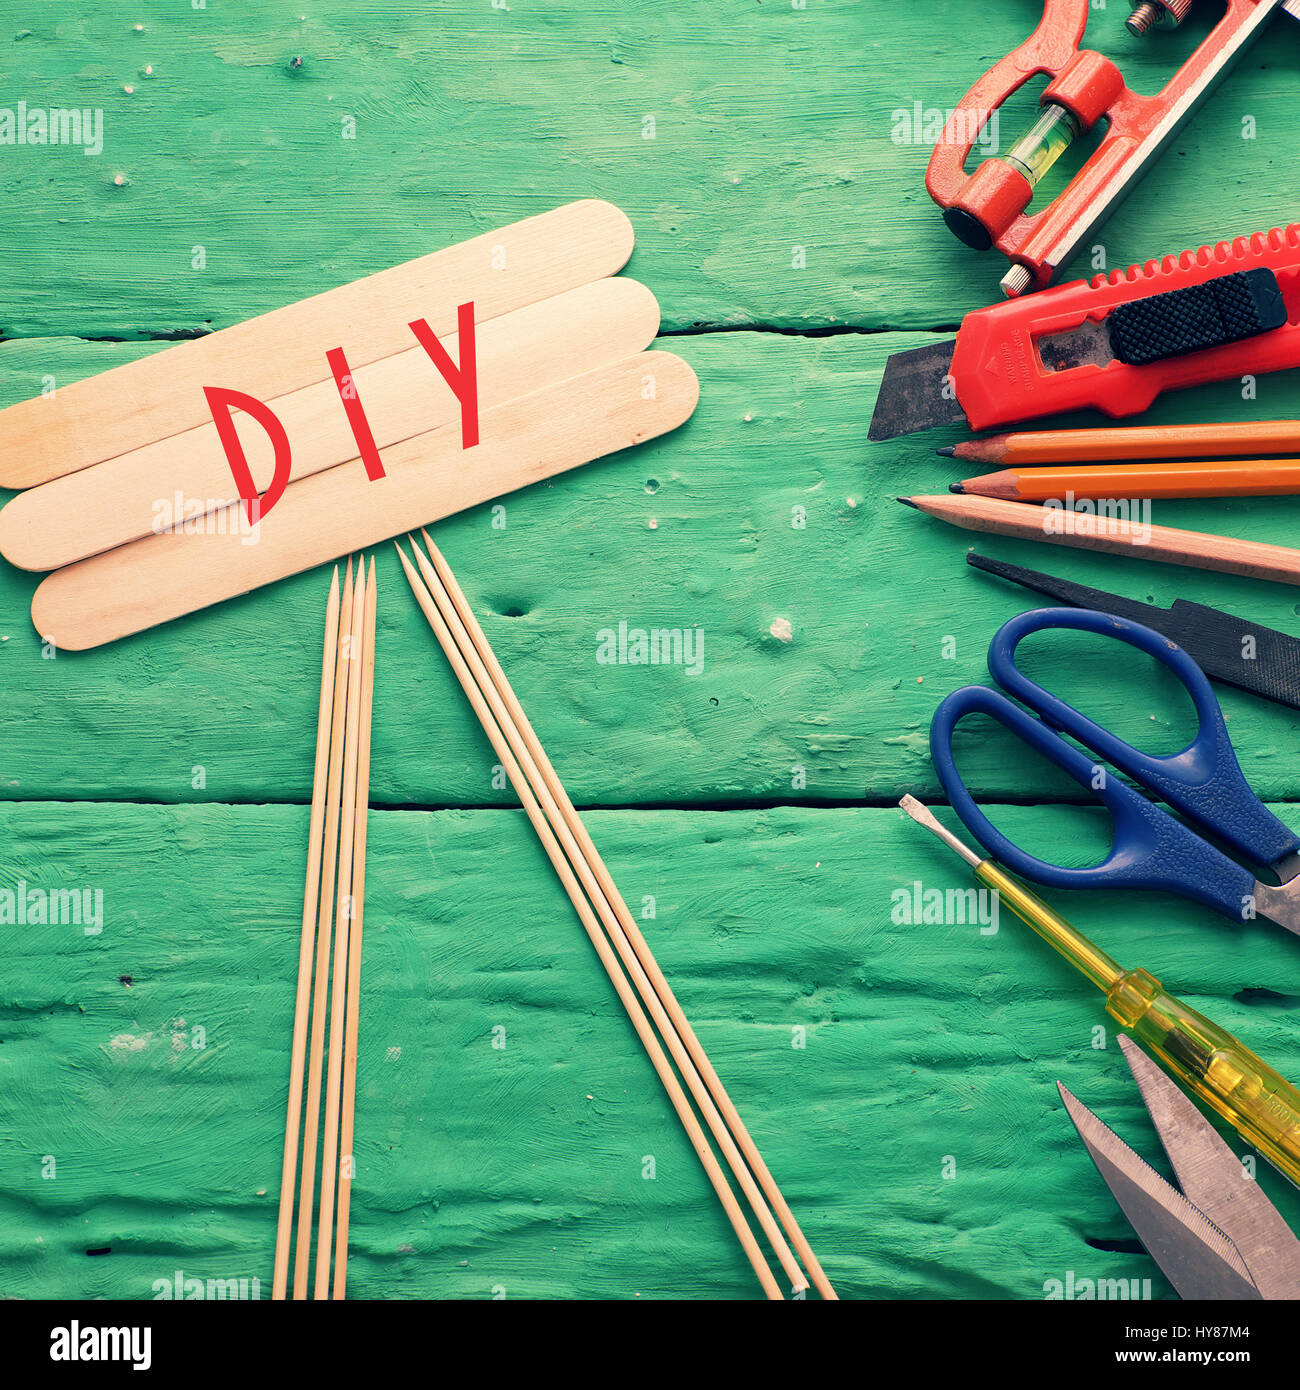 Diy tools background with group of crafting tools like scissors, hammer, knife, equipment for handmade product on - Stock Image